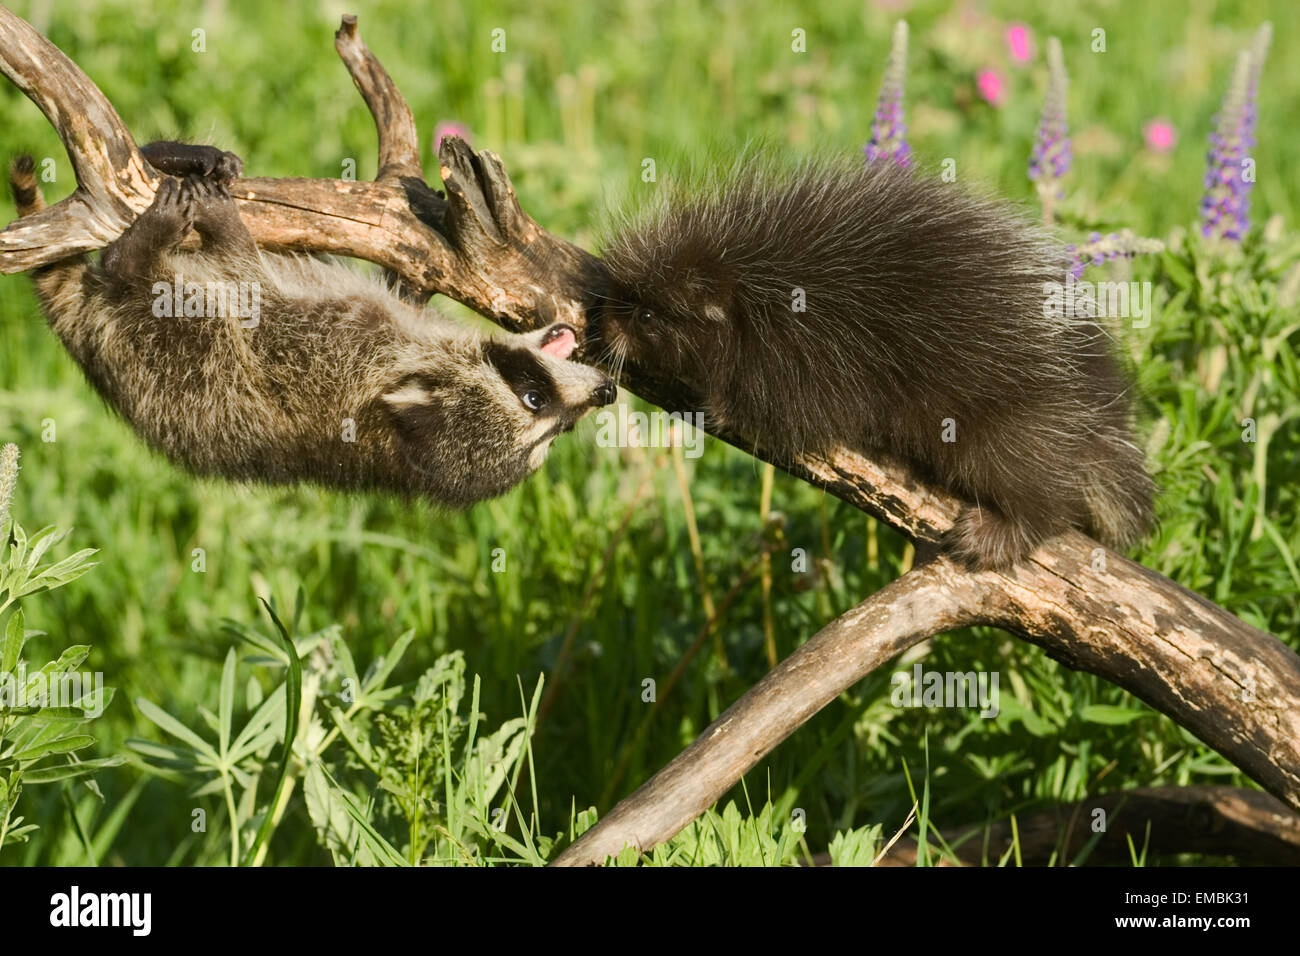 Young Common Porcupine (Erethizon dorsatum) meeting a young Raccoon (Procyon lotor) on a log in the meadow. - Stock Image